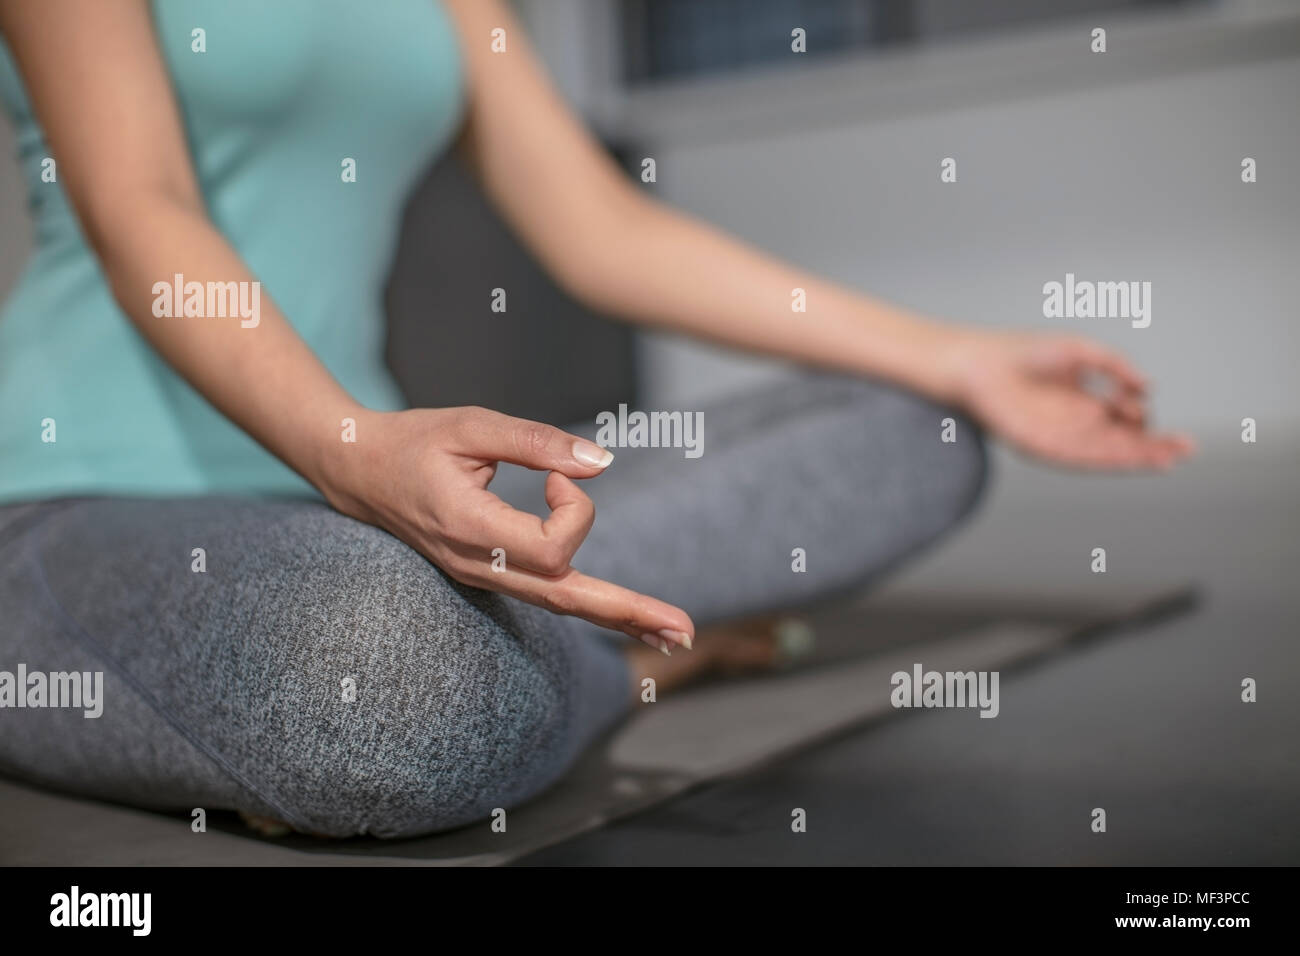 Close-up of woman doing yoga exercise in studio - Stock Image